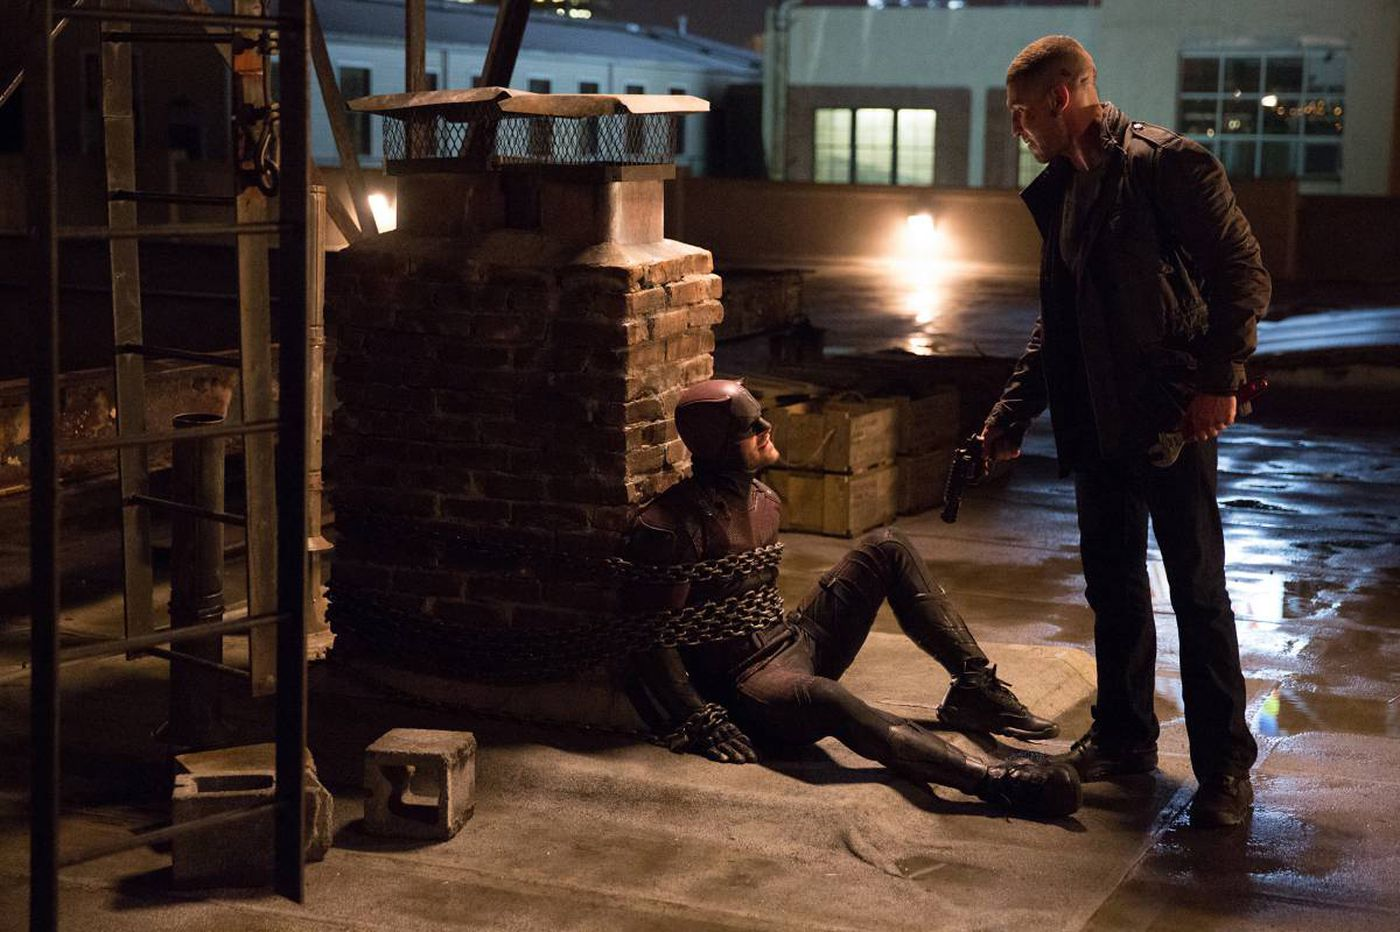 'Daredevil' takes some hits in return to Netflix